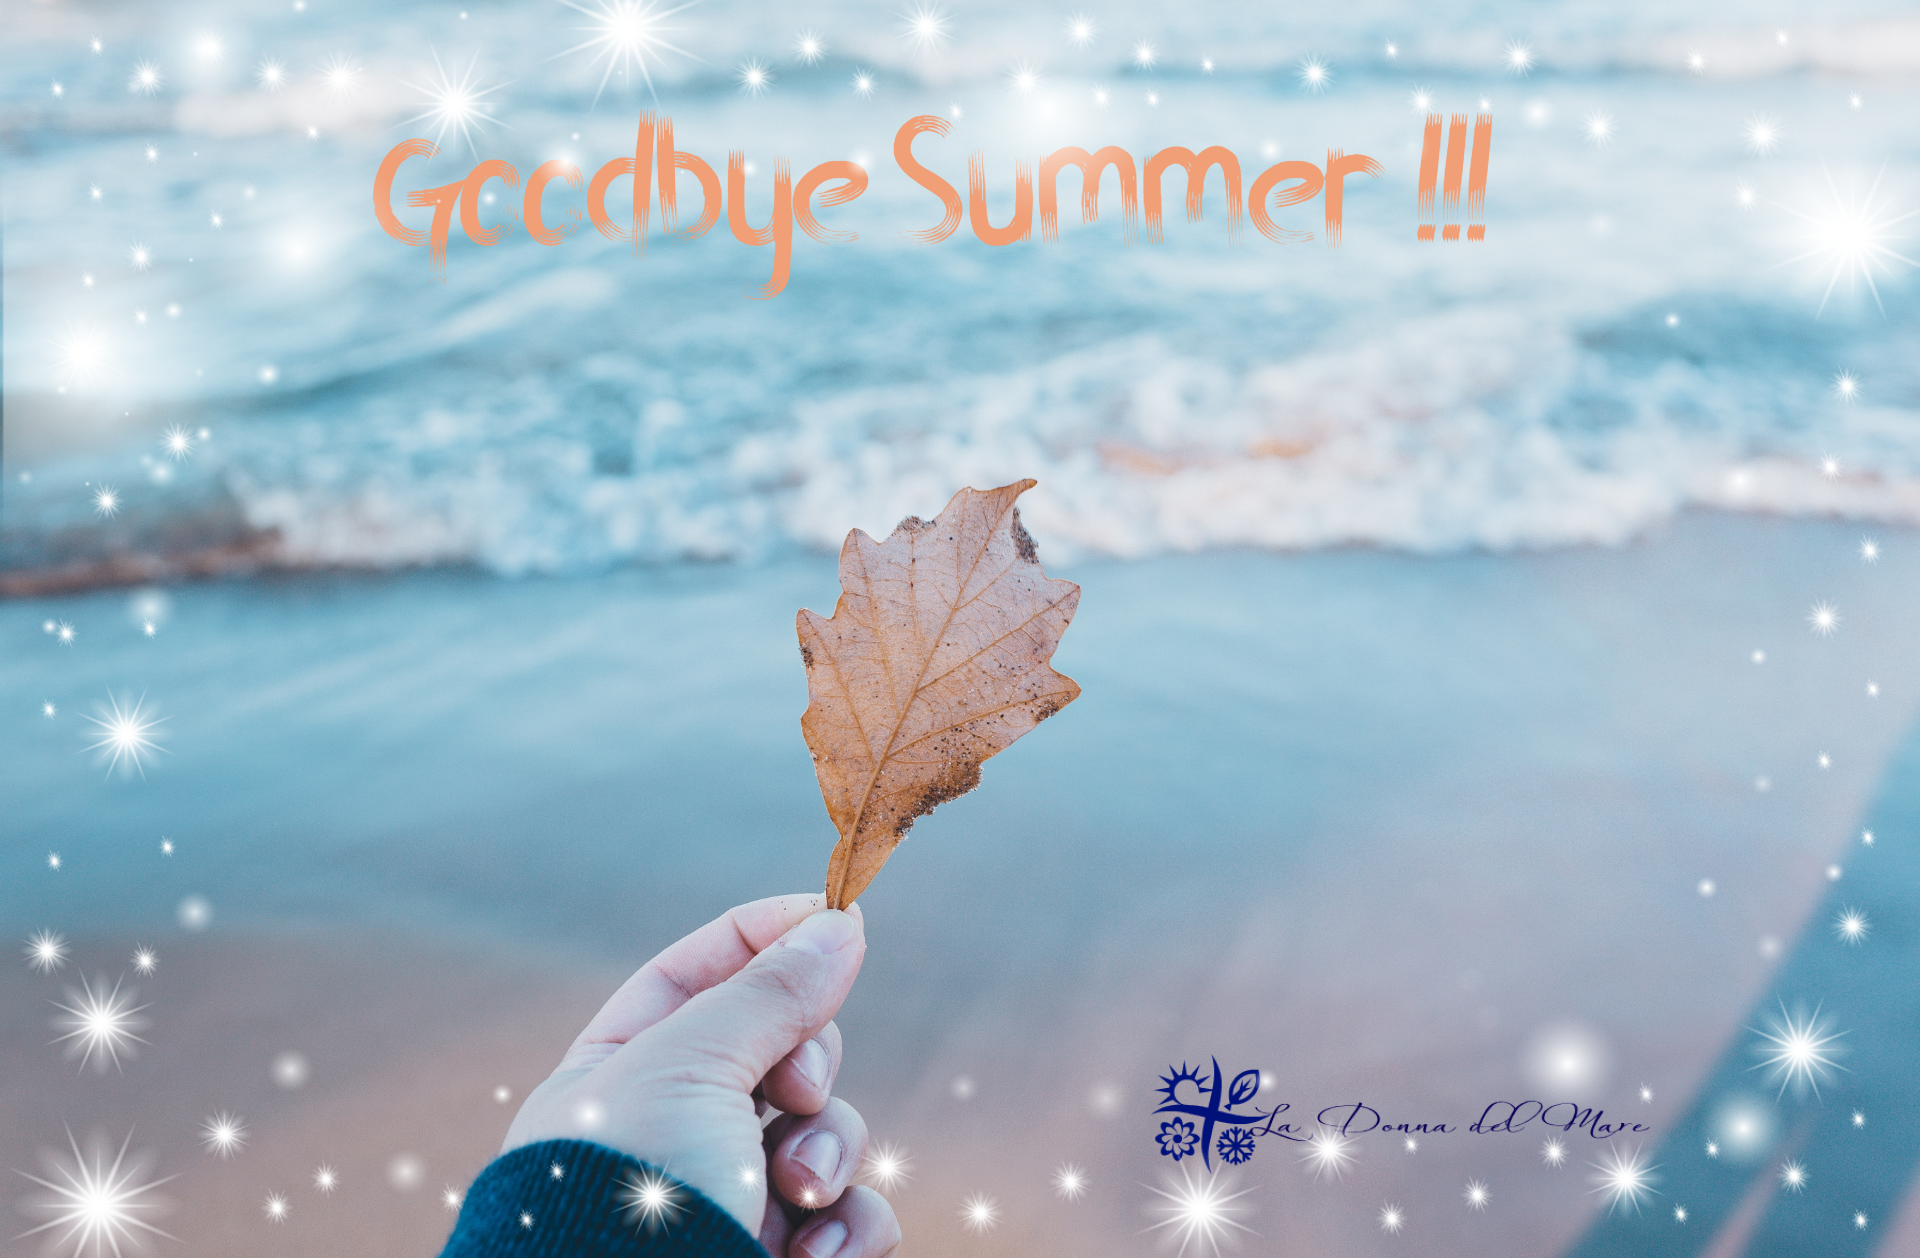 Goodbye Summer